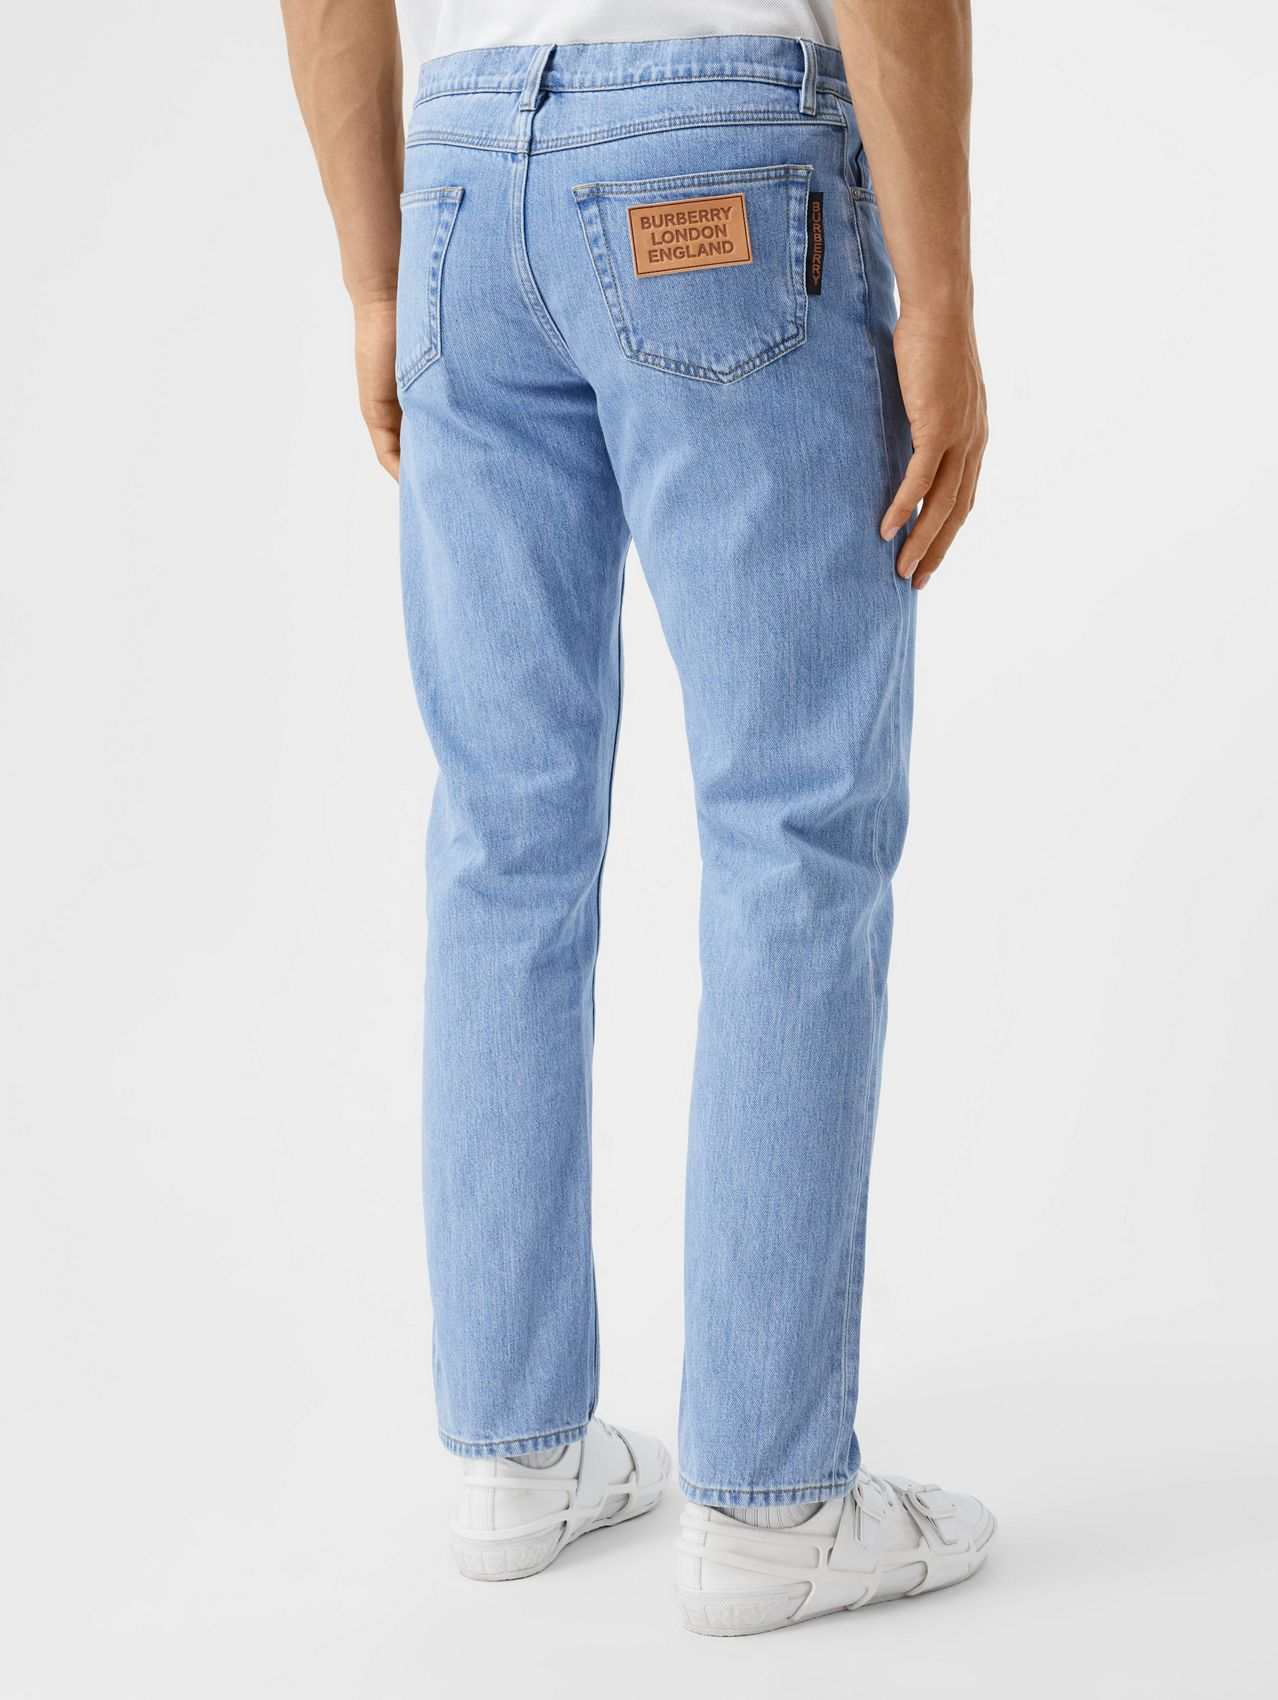 Straight Fit Japanese Denim Jeans in Light Indigo Blue